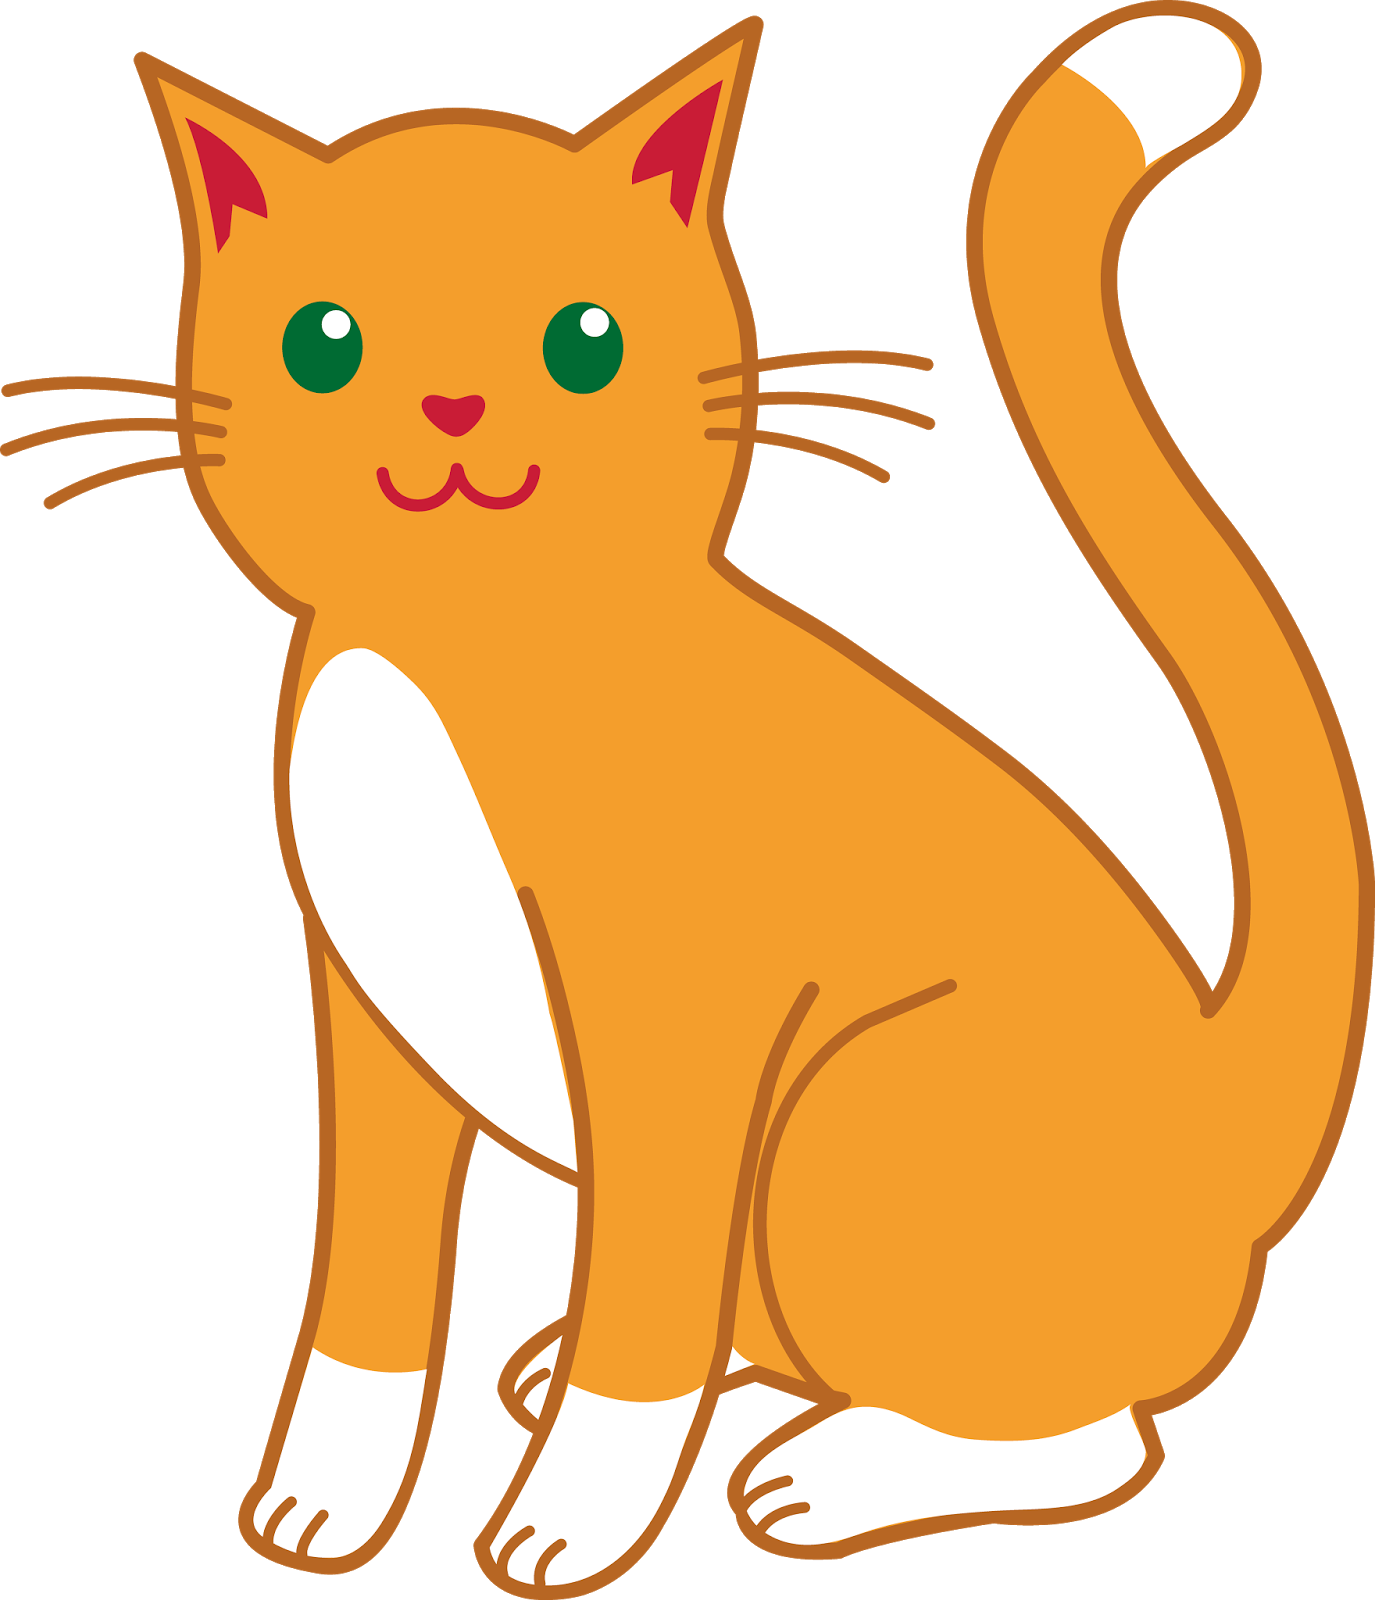 Cat Cartoon Image